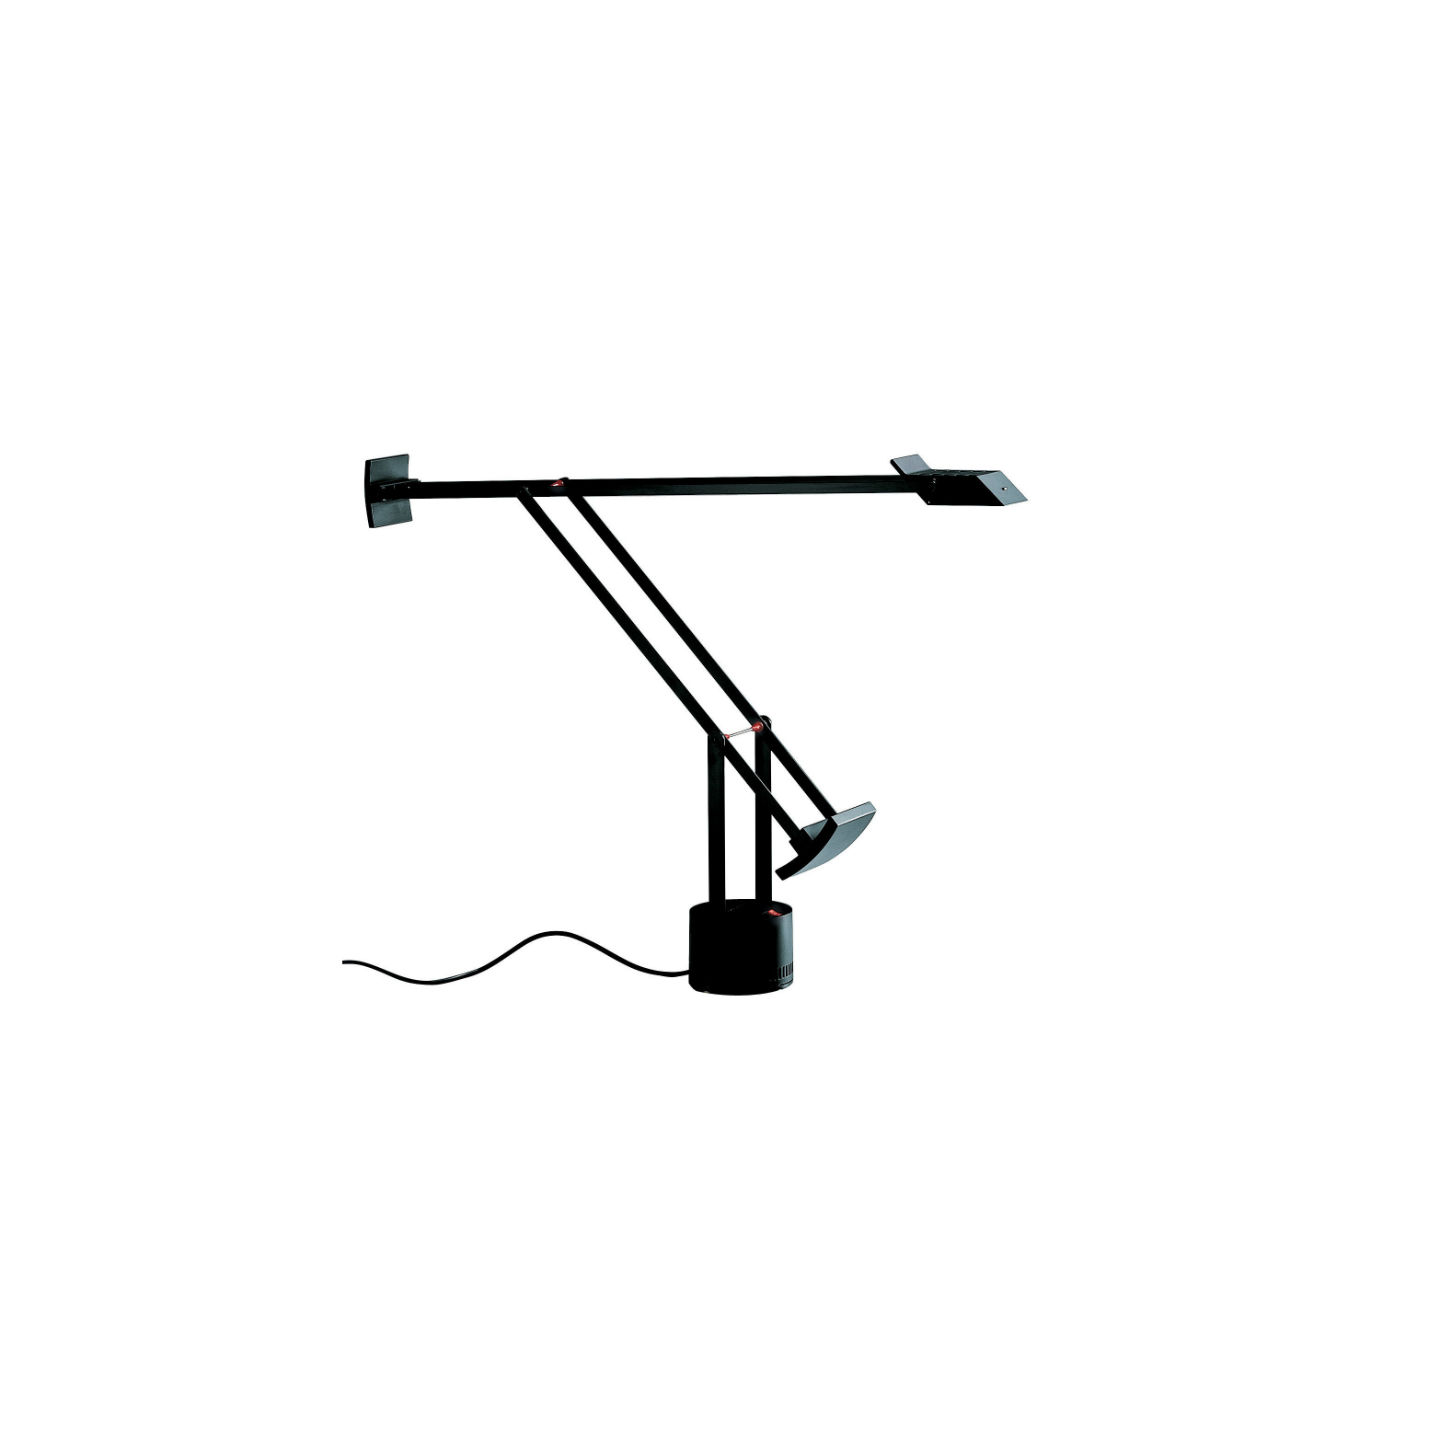 Tizio Micro Table lamp Gy6.35 1x20w Black